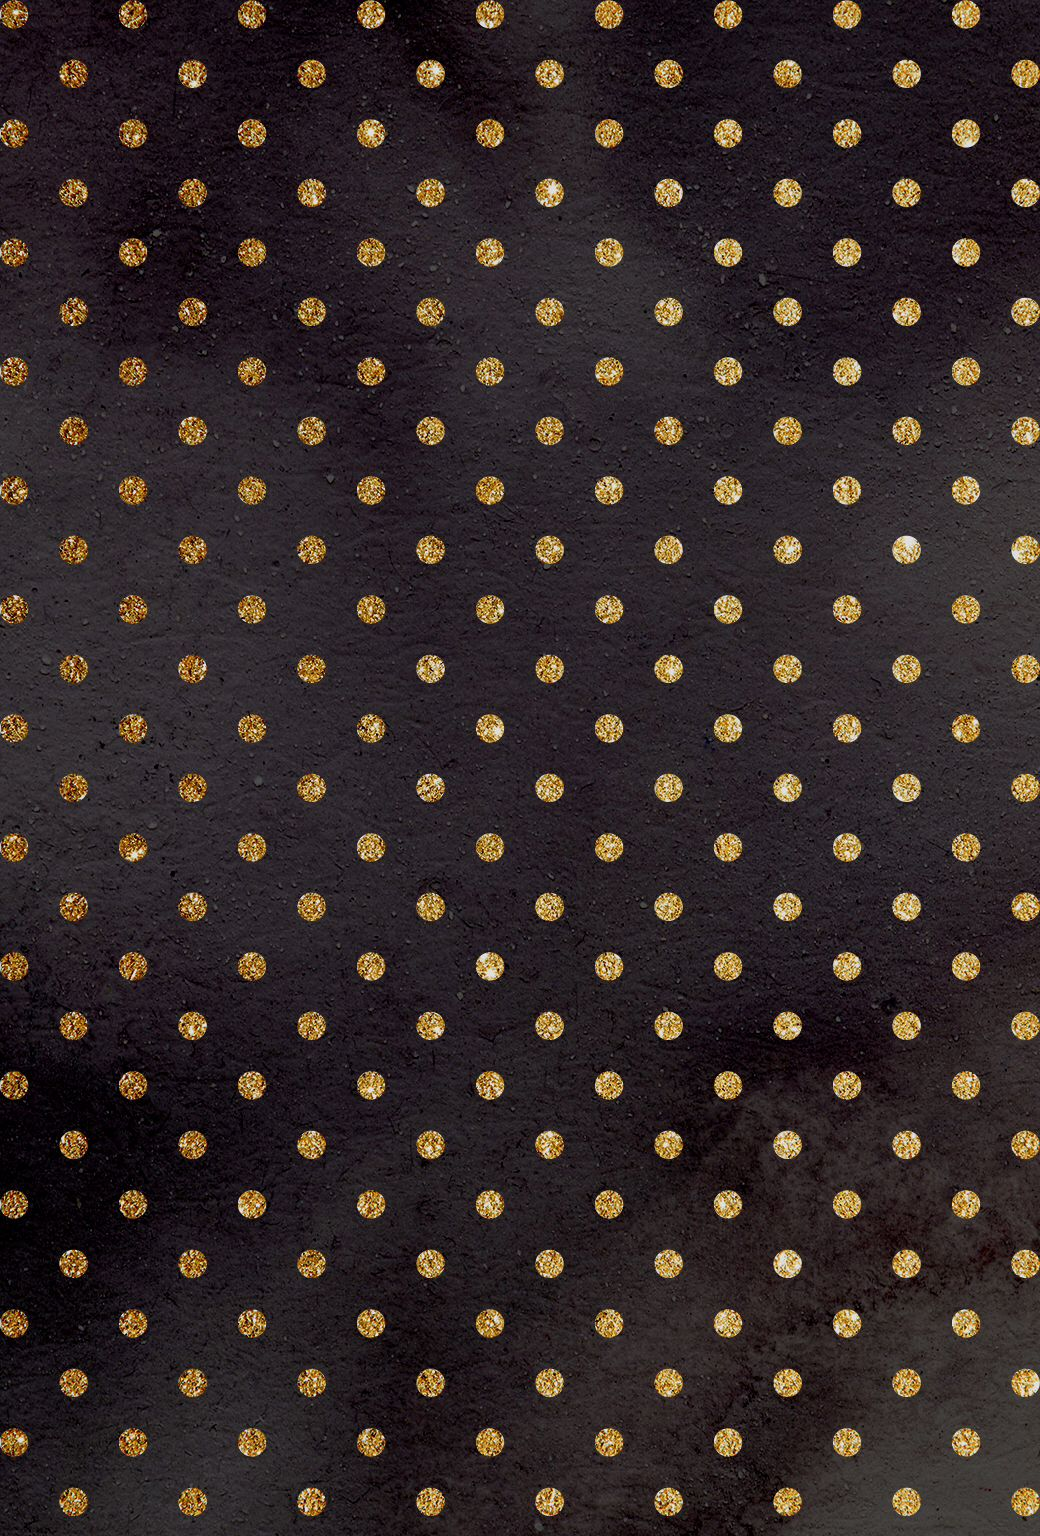 Gold Polka Dots Iphone Wallpaper Quote Maker Patterns Pinterest